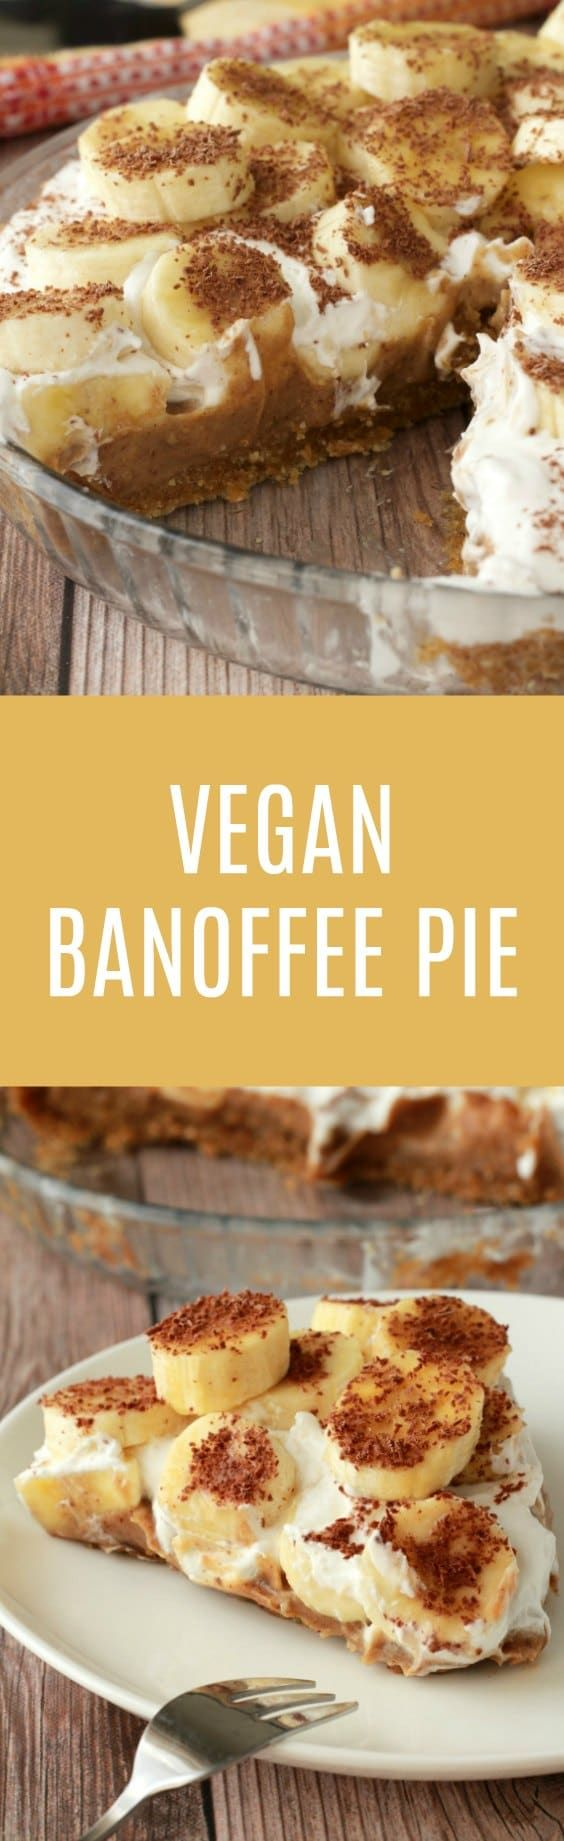 Insanely delicious nobake vegan banoffee pie with a